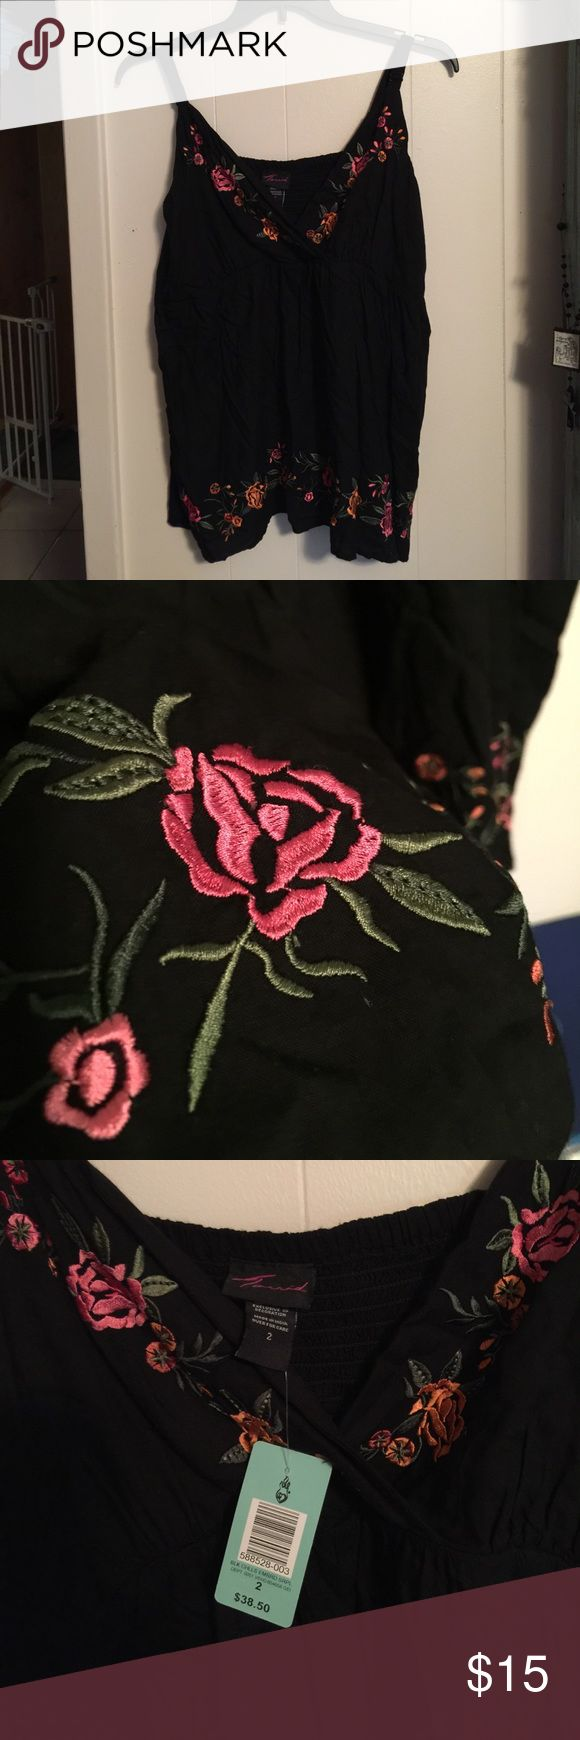 Torrid Tank Top  Never worn and tags still attached. Very beautiful! torrid Tops Tank Tops